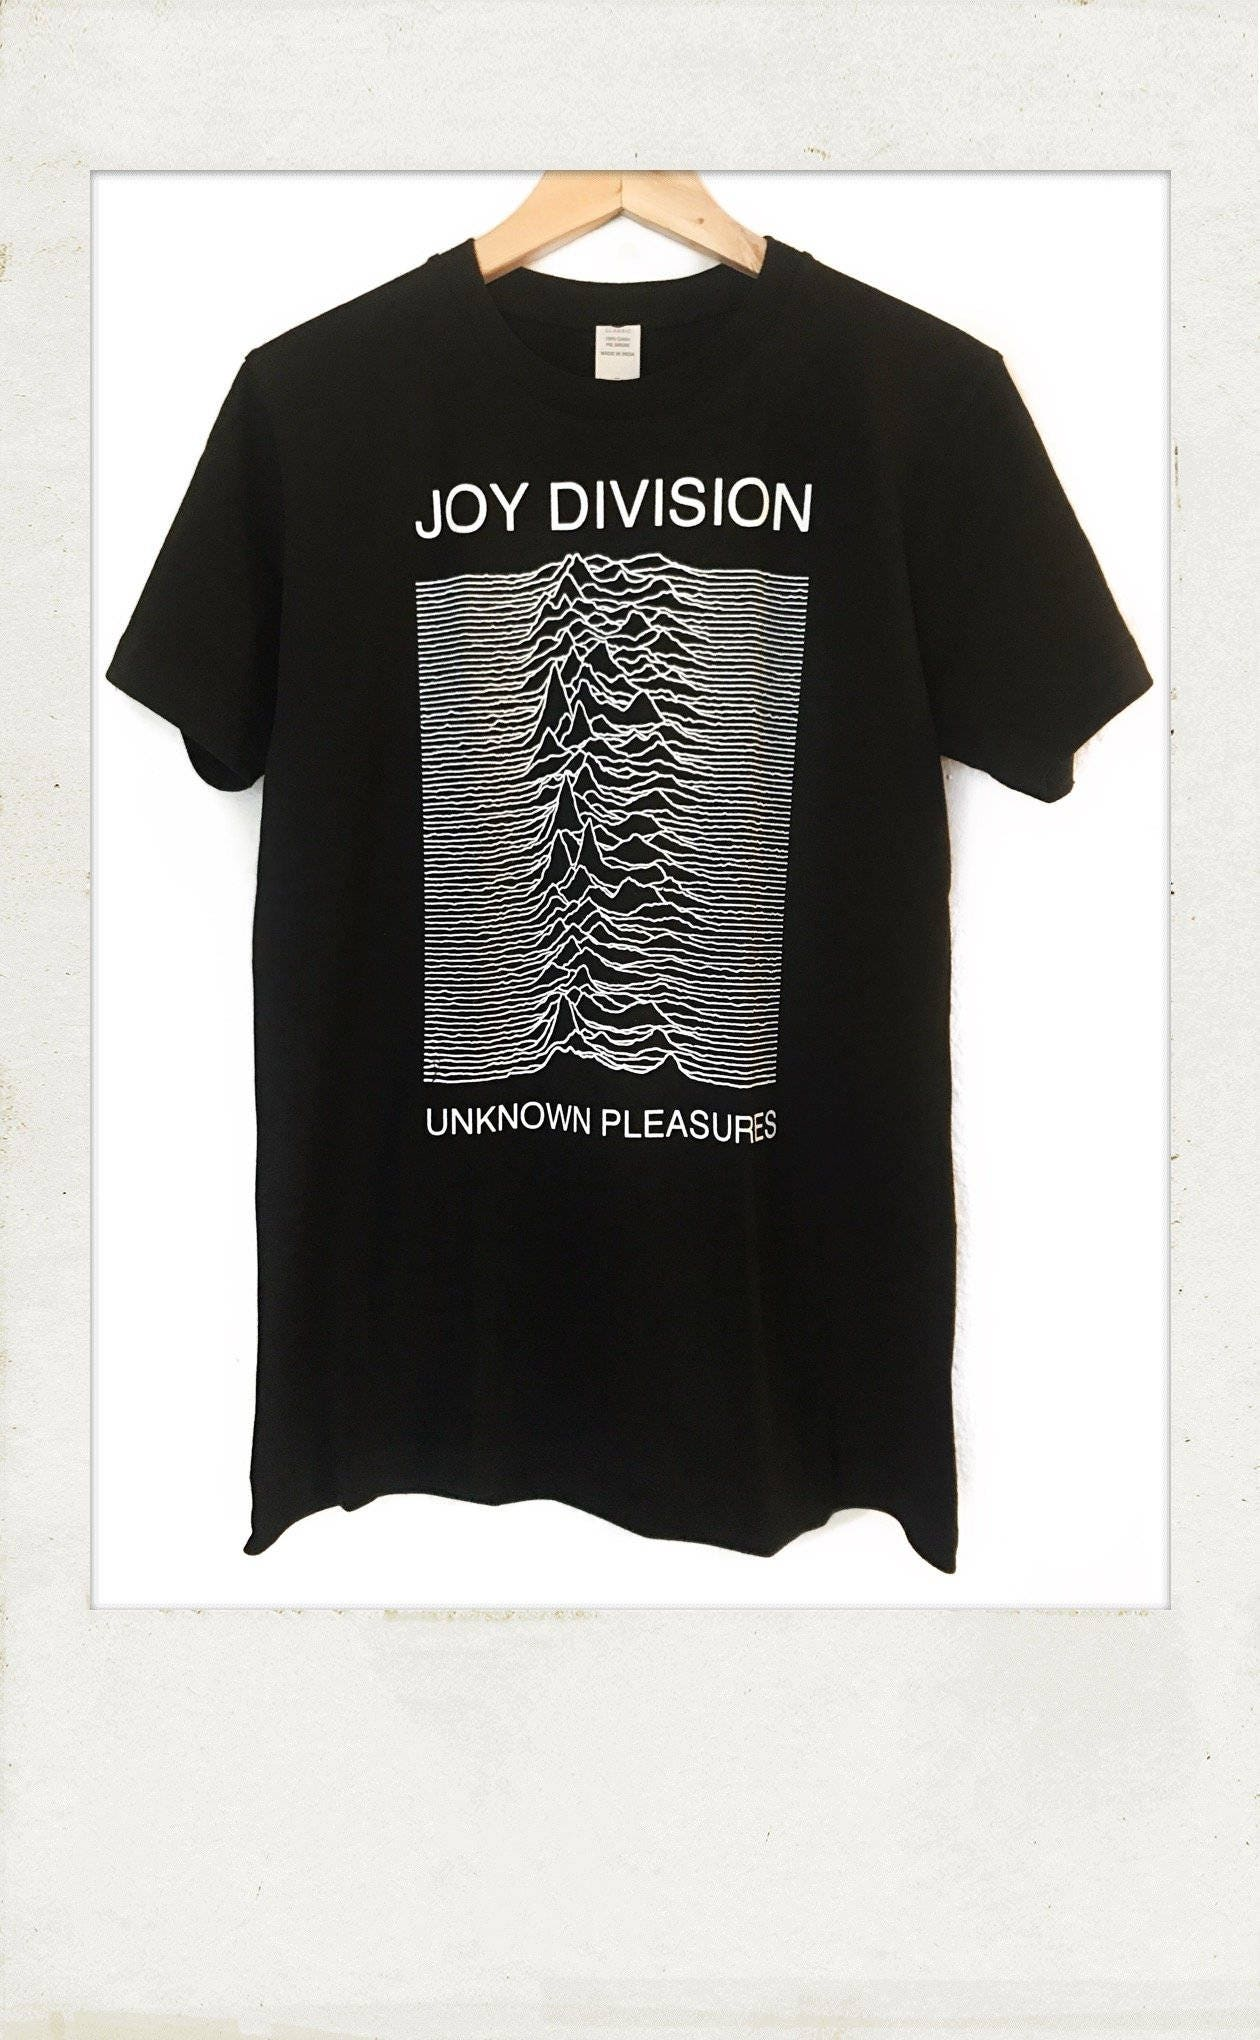 joy division unknnown pleasures t shirt etsy. Black Bedroom Furniture Sets. Home Design Ideas